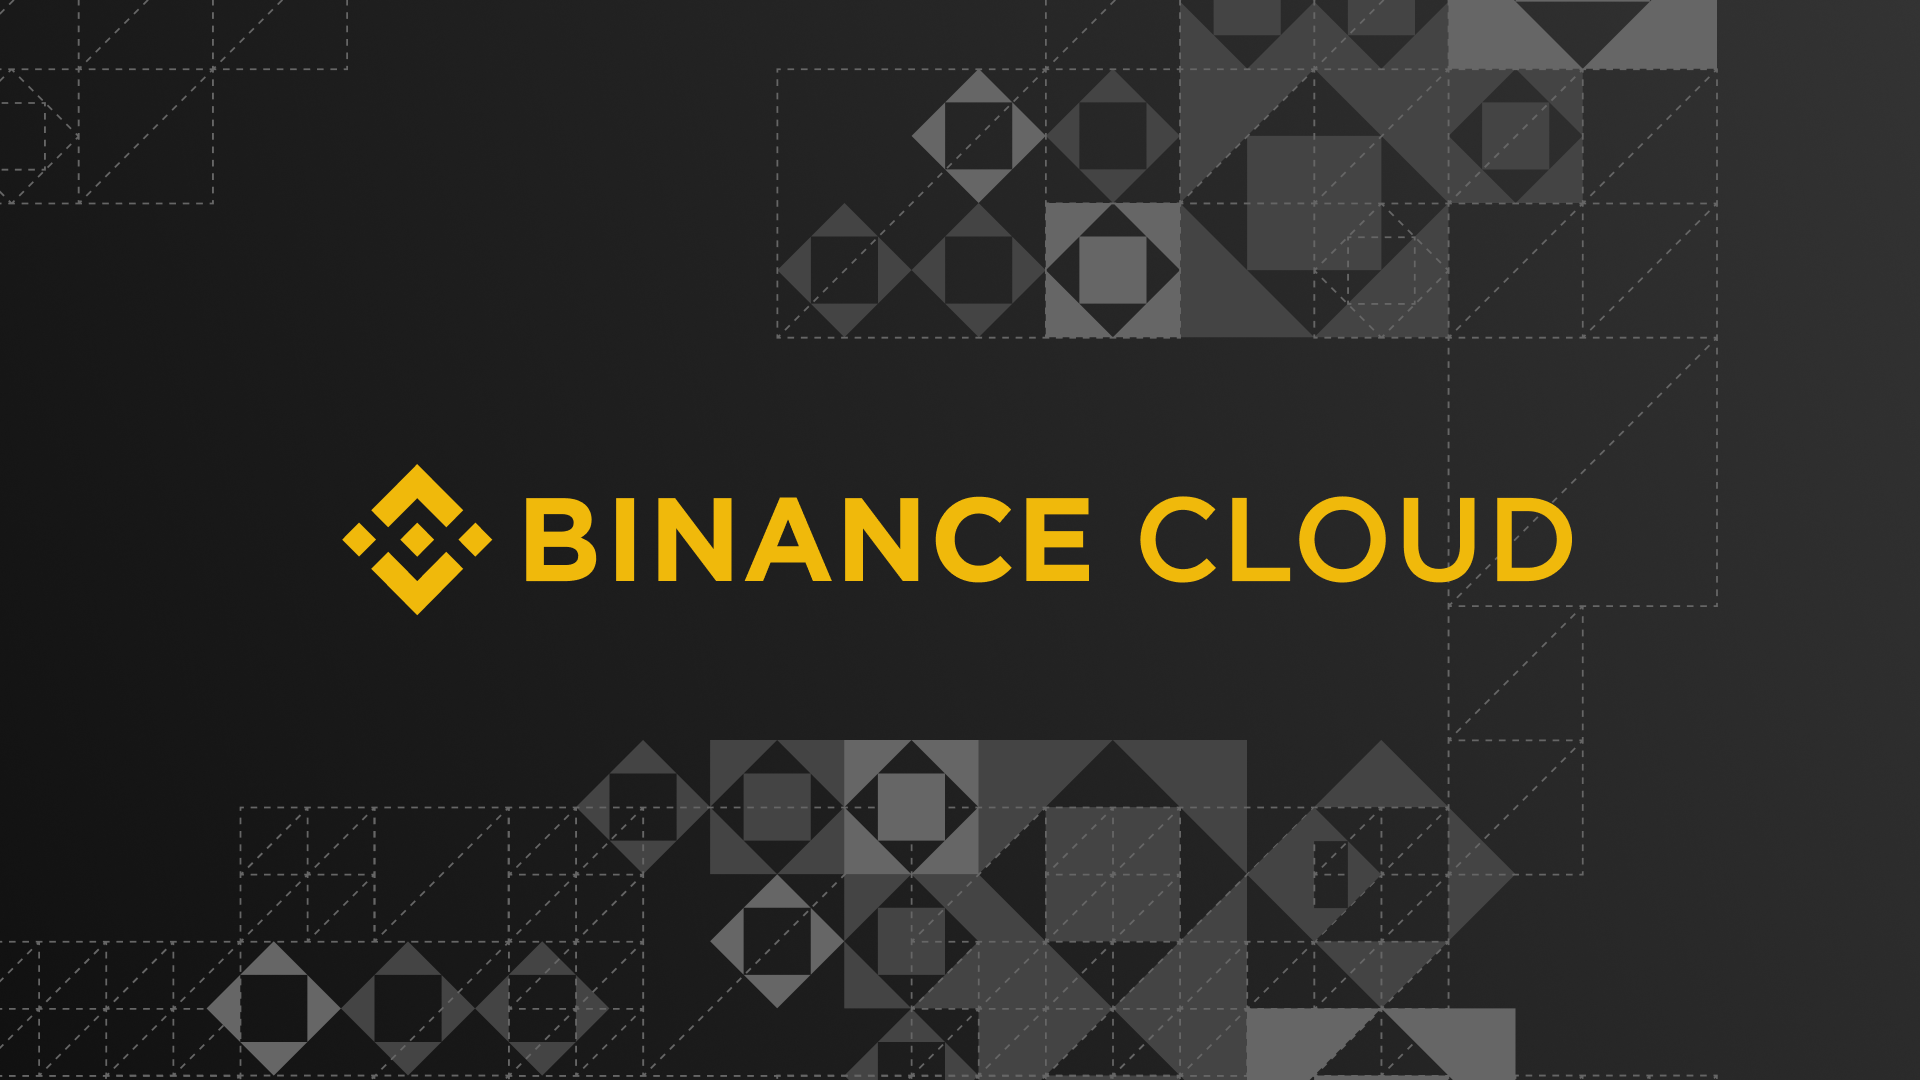 Binance Announces B2B2C Cloud Solution for Launching Digital Asset Trading PlatformsCryptocurrency Trading Signals, Strategies & Templates   DexStrats